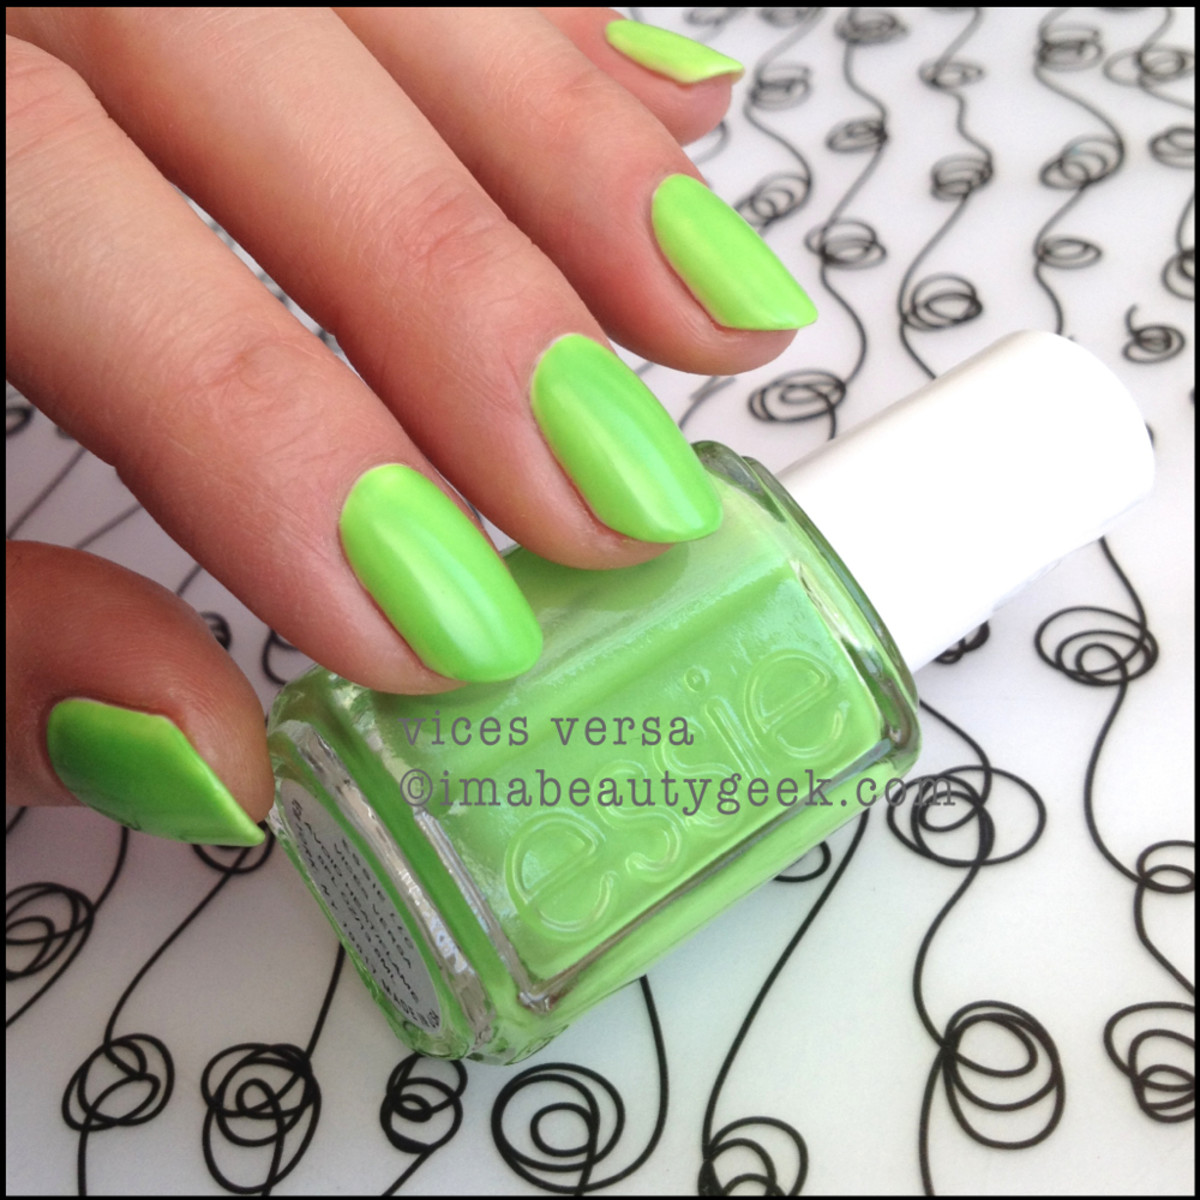 Essie Vices Versa_2 Neon Too Taboo 2014